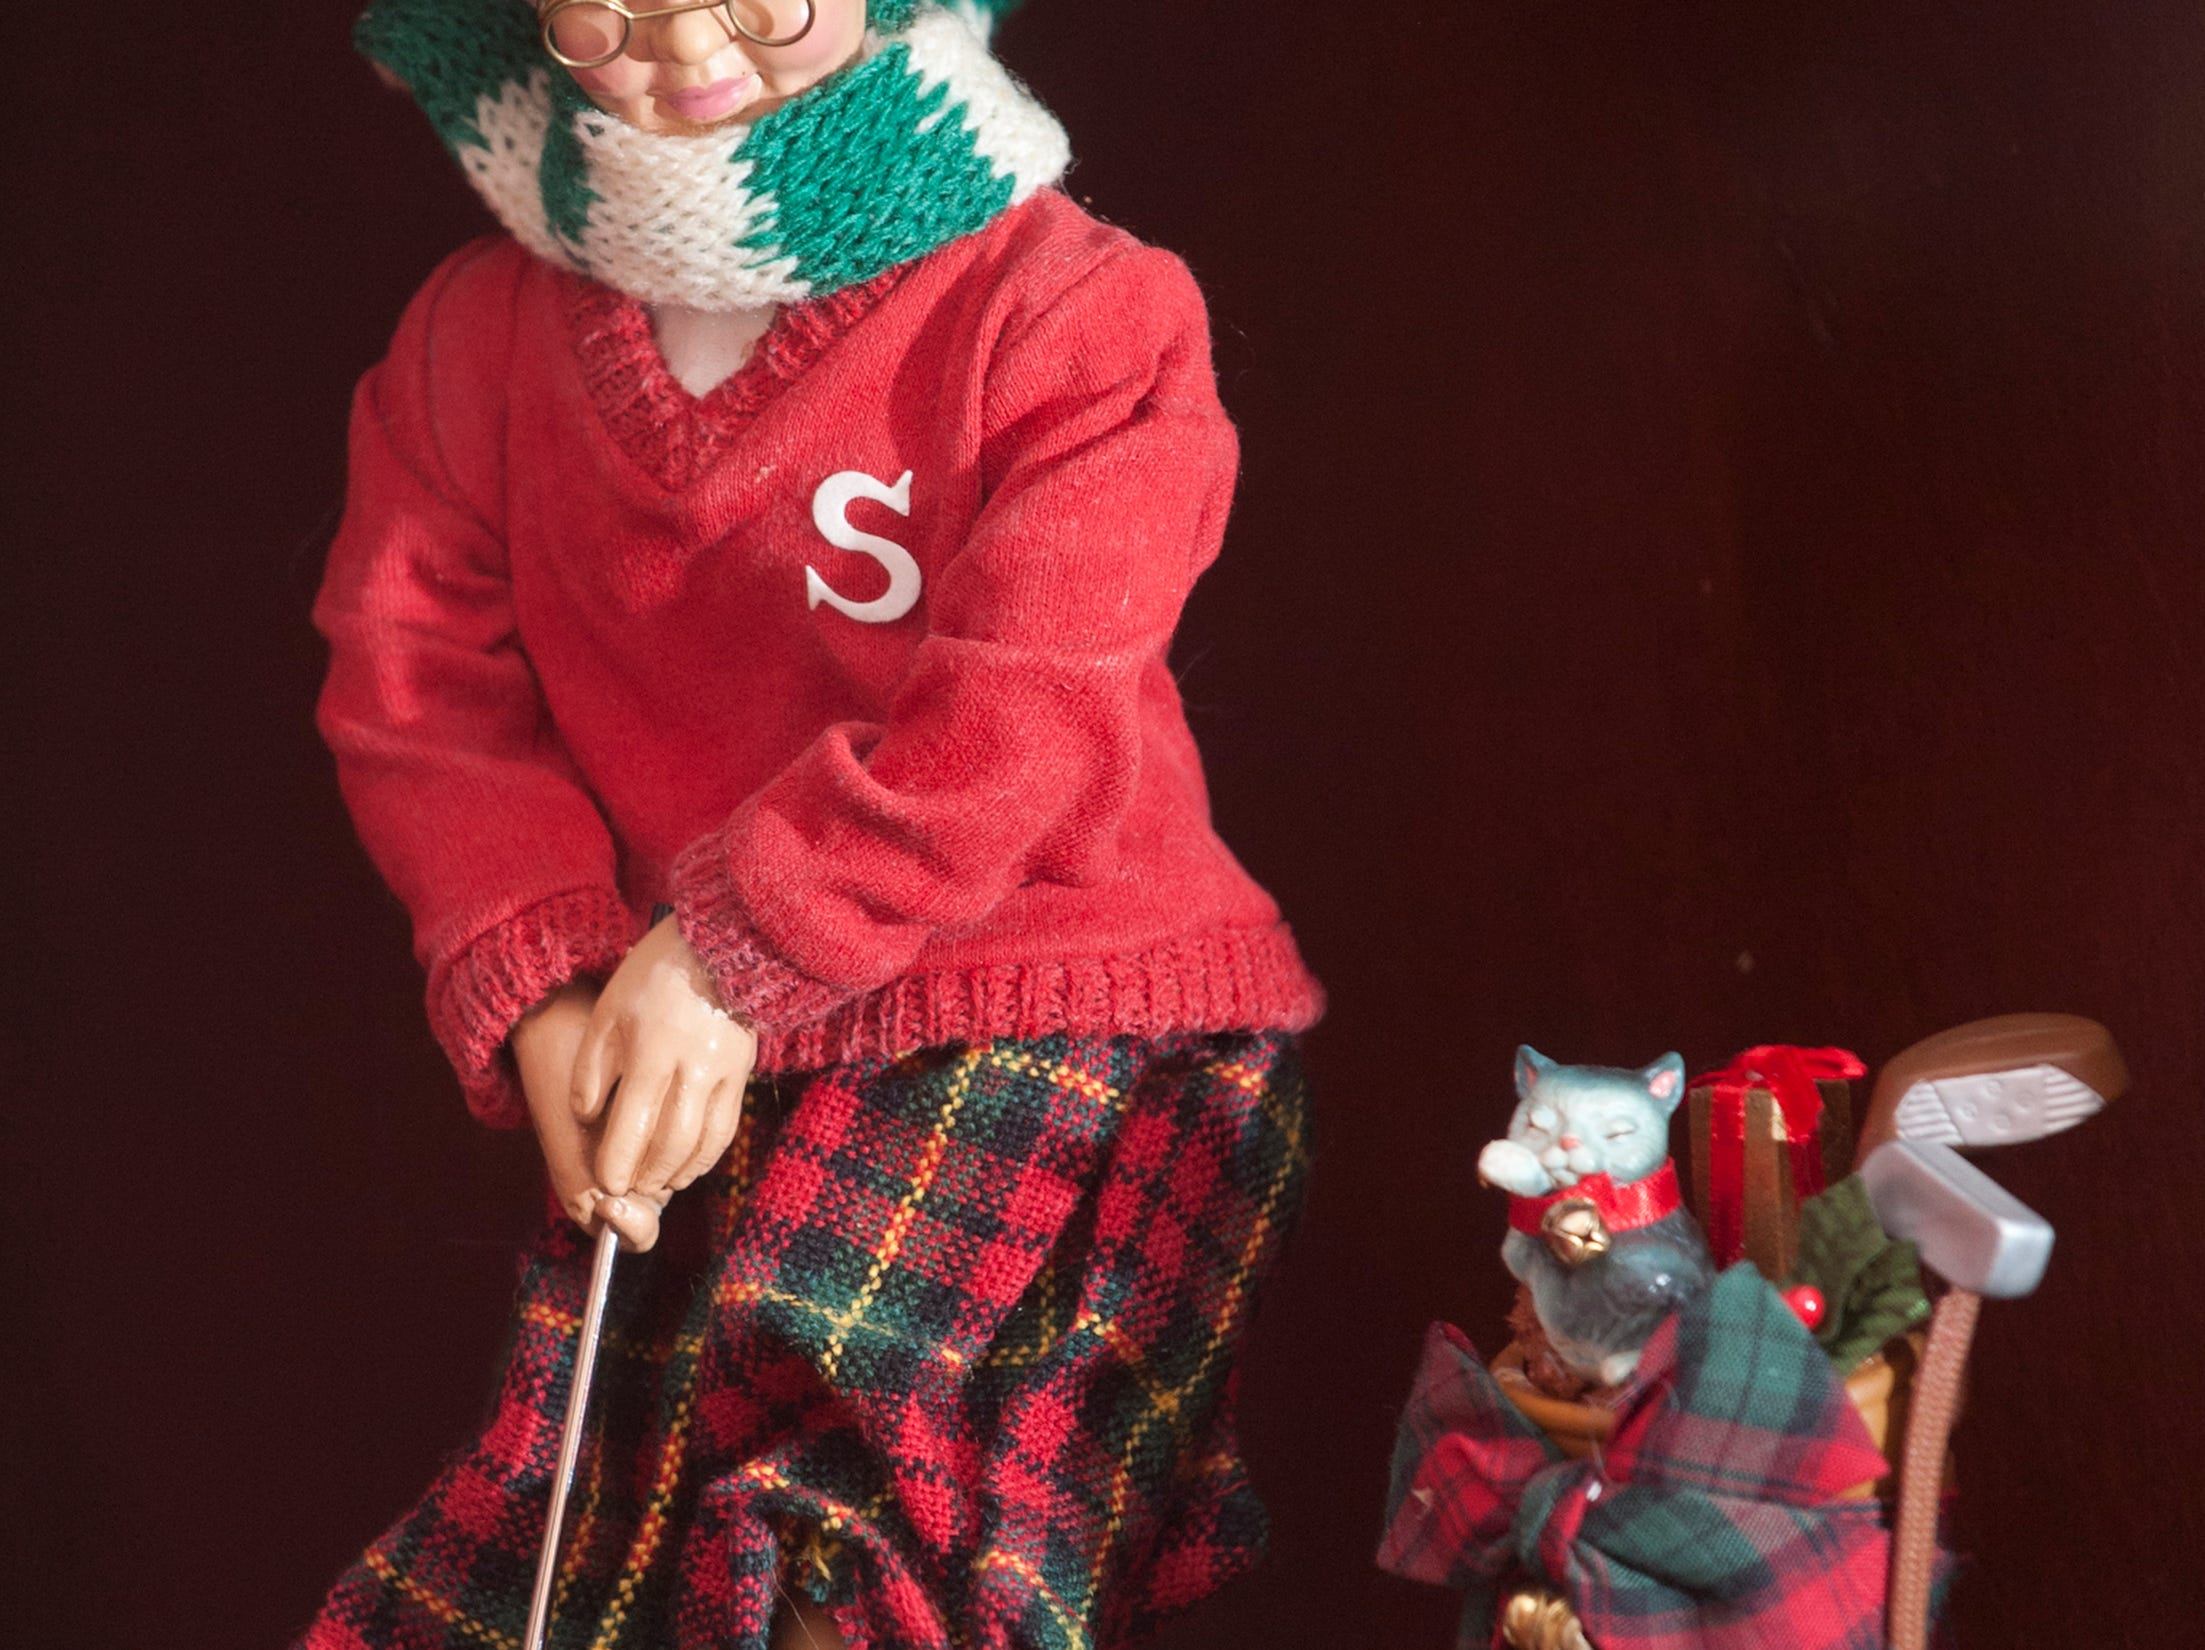 This figurine of Mrs. Santa includes a little kitten popping out of her golf bag.